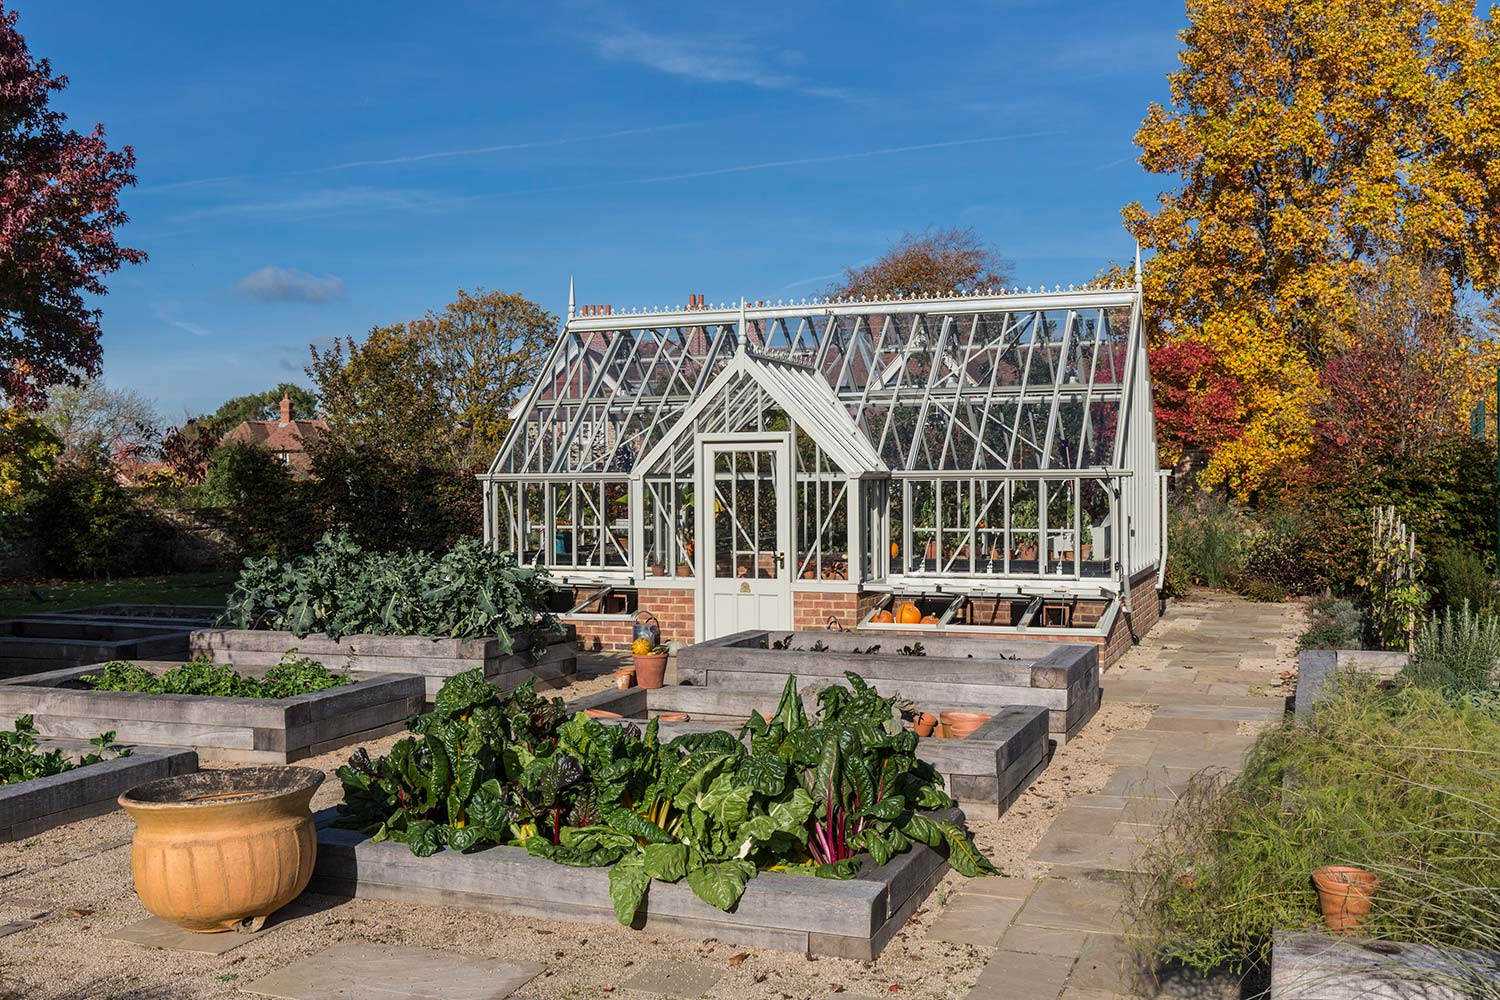 The Crane Greenhouse from the Alitex Kew Greenhouse Collection